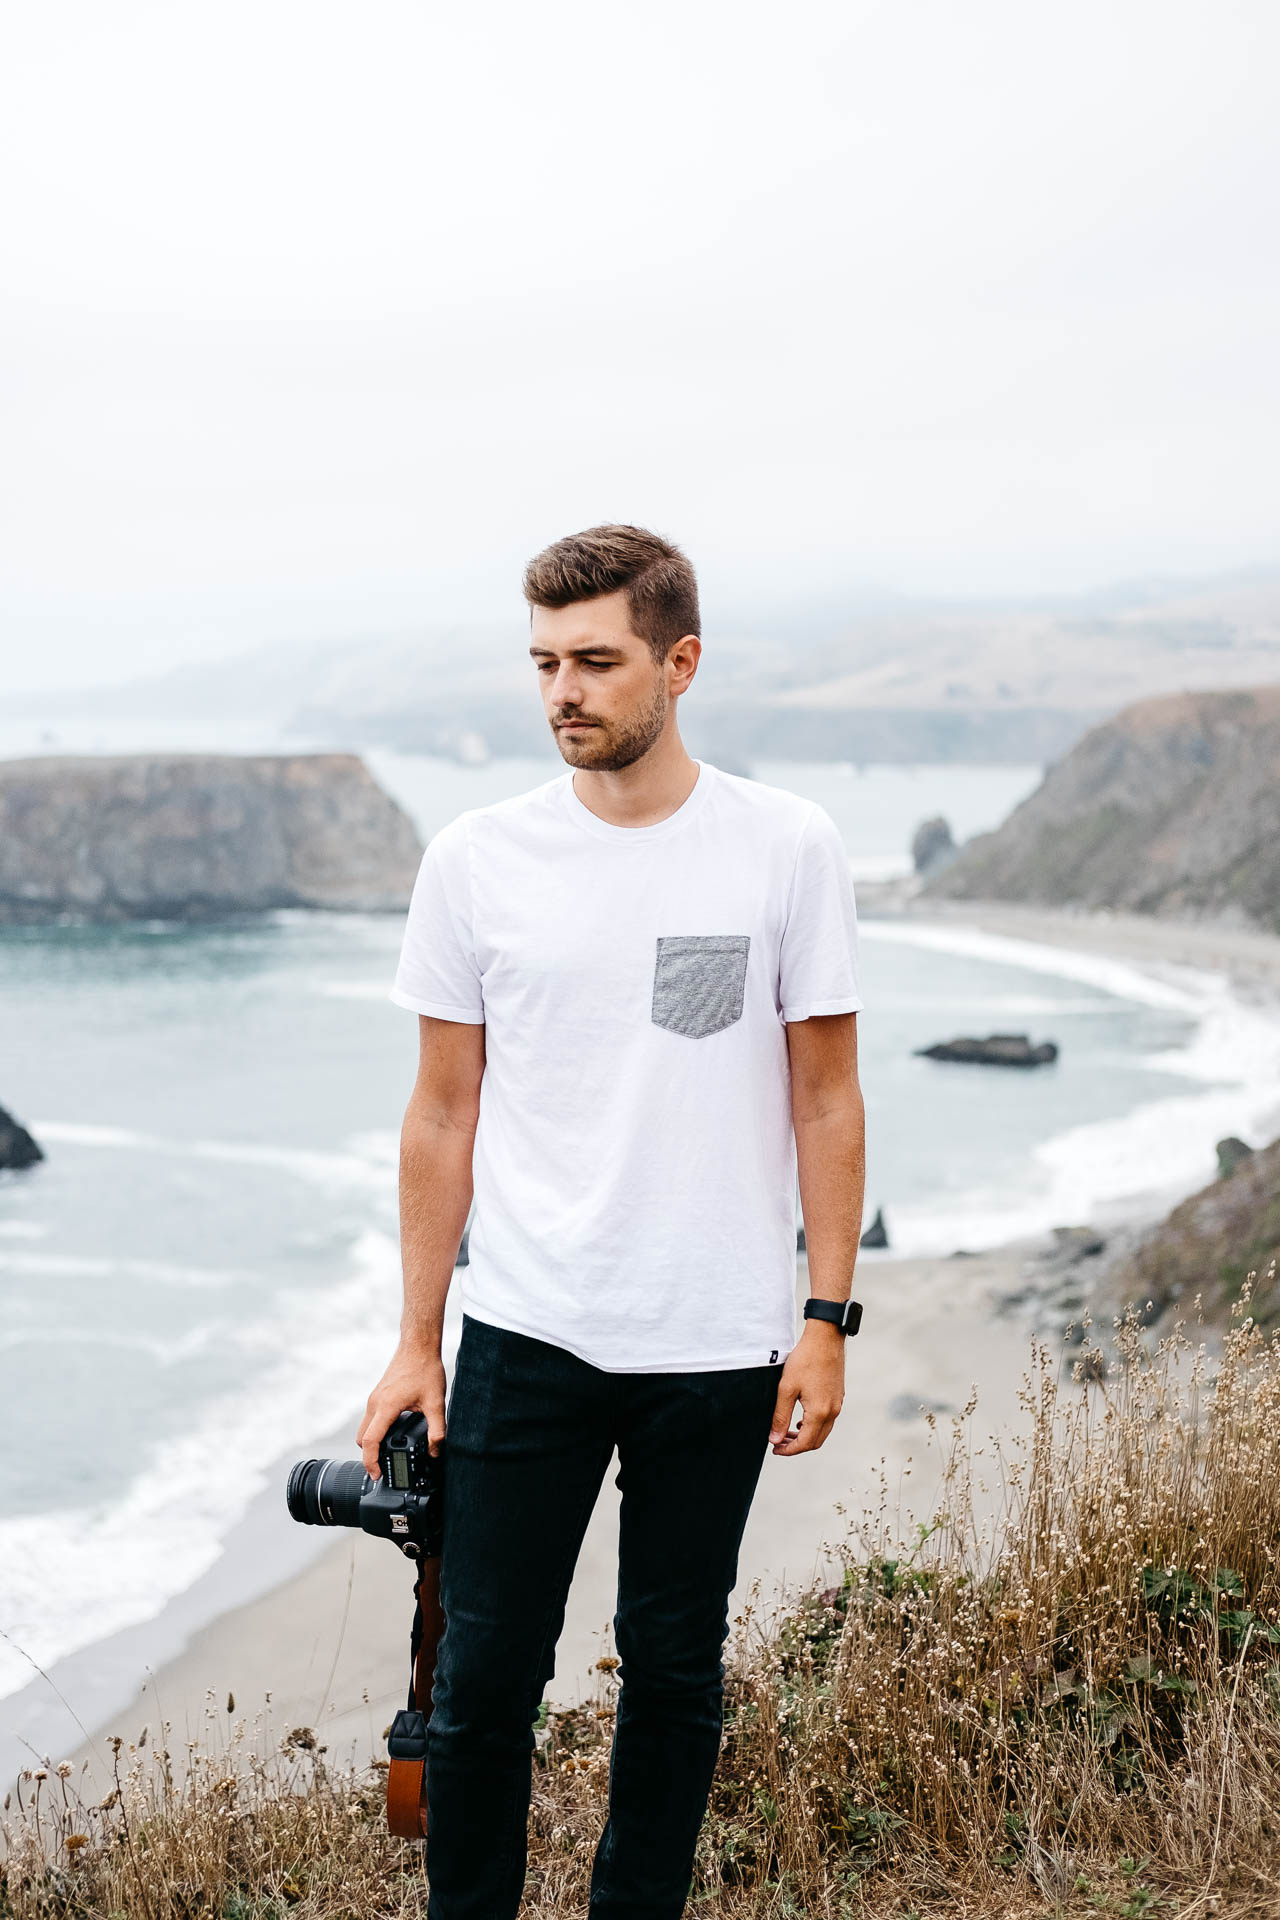 Jonathan Grado Portrait at Goat Rock Beach